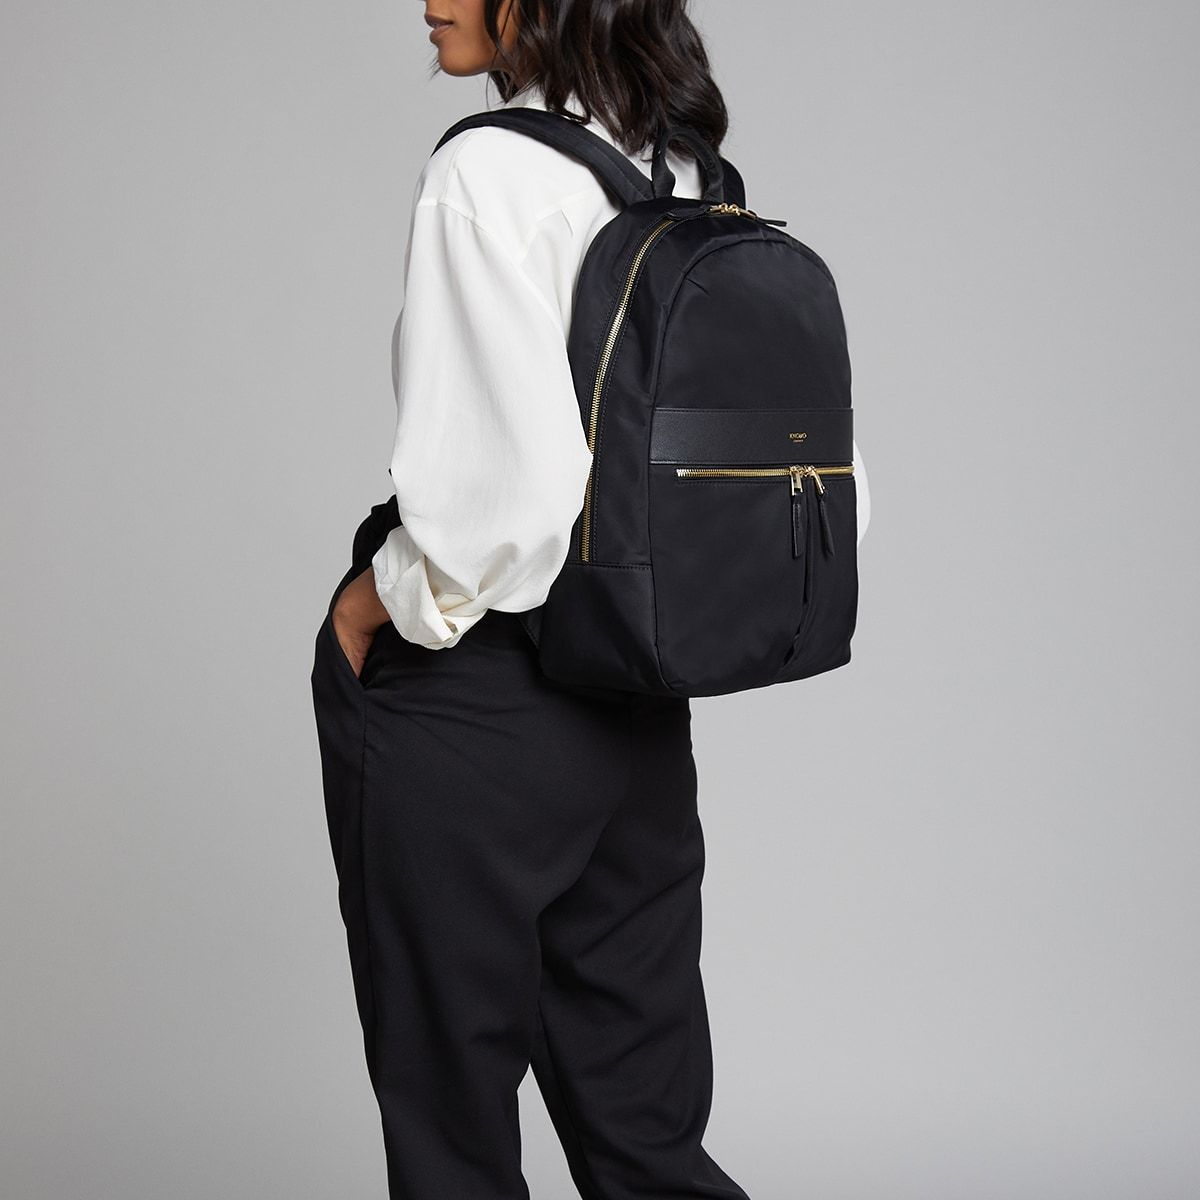 "KNOMO Beauchamp Laptop Backpack Female Model Wearing 14"" -  Black 